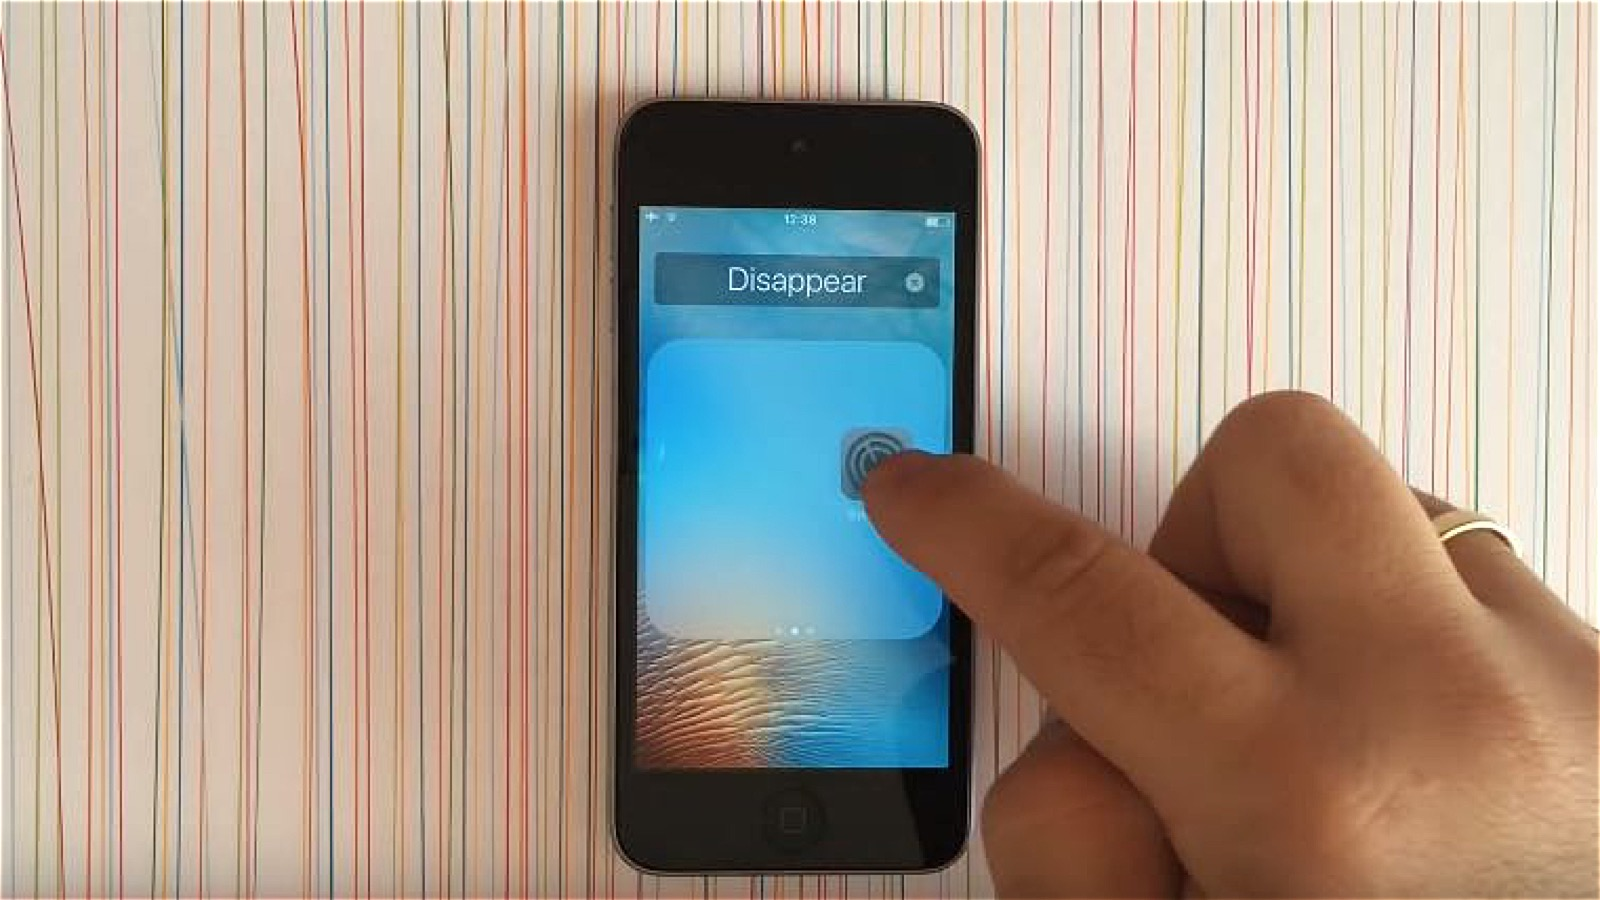 How to hide app in iOS 9 without jailbreak